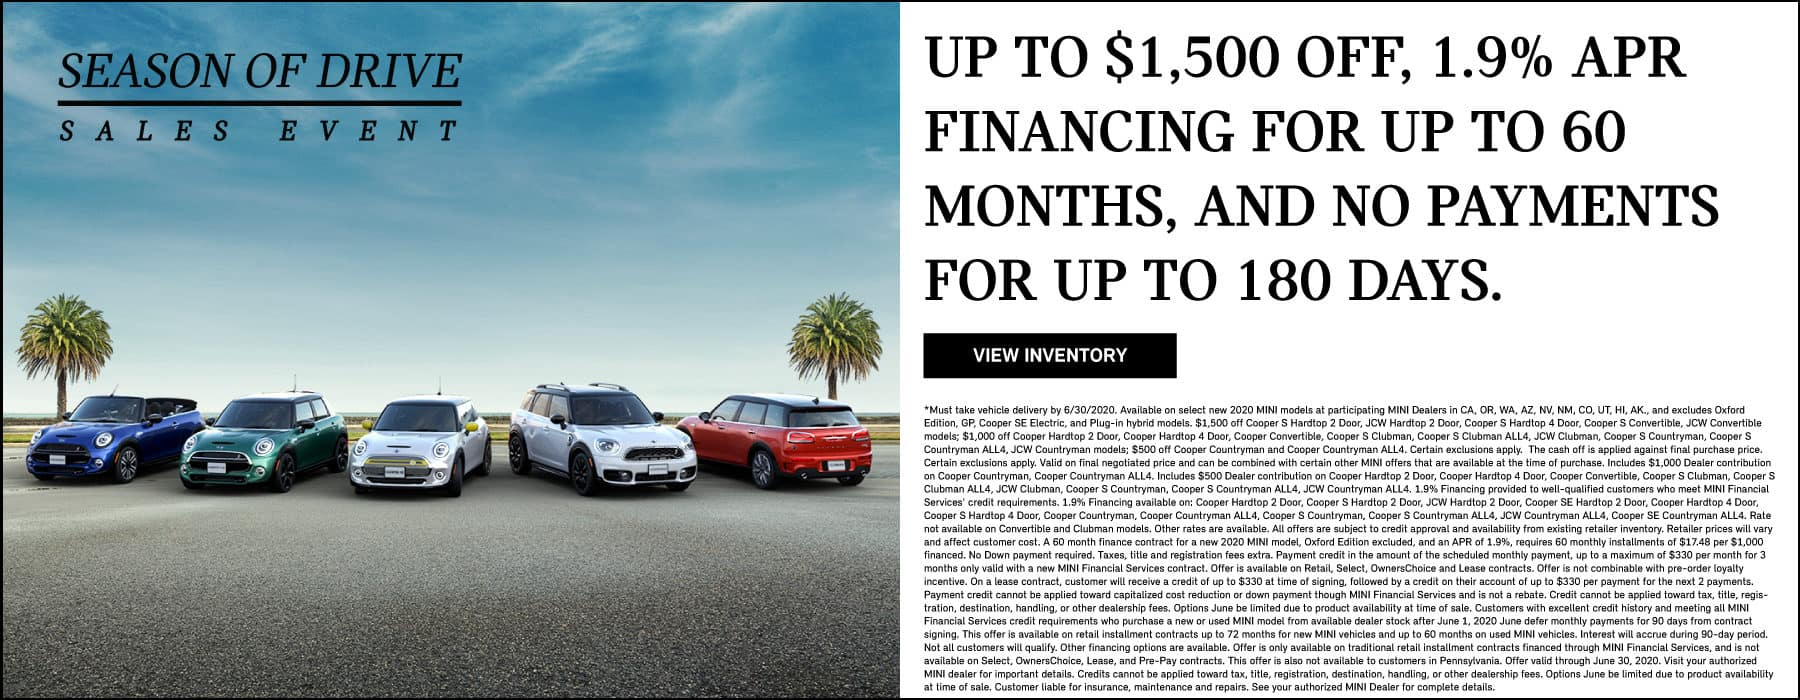 UP TO $1,500 OFF, 1.9% APR FINANCING FOR UP TO 60 MONTHS, AND NO PAYMENTS FOR UP TO 180 DAYS. SEE DEALER FOR COMPLETE DETAILS.